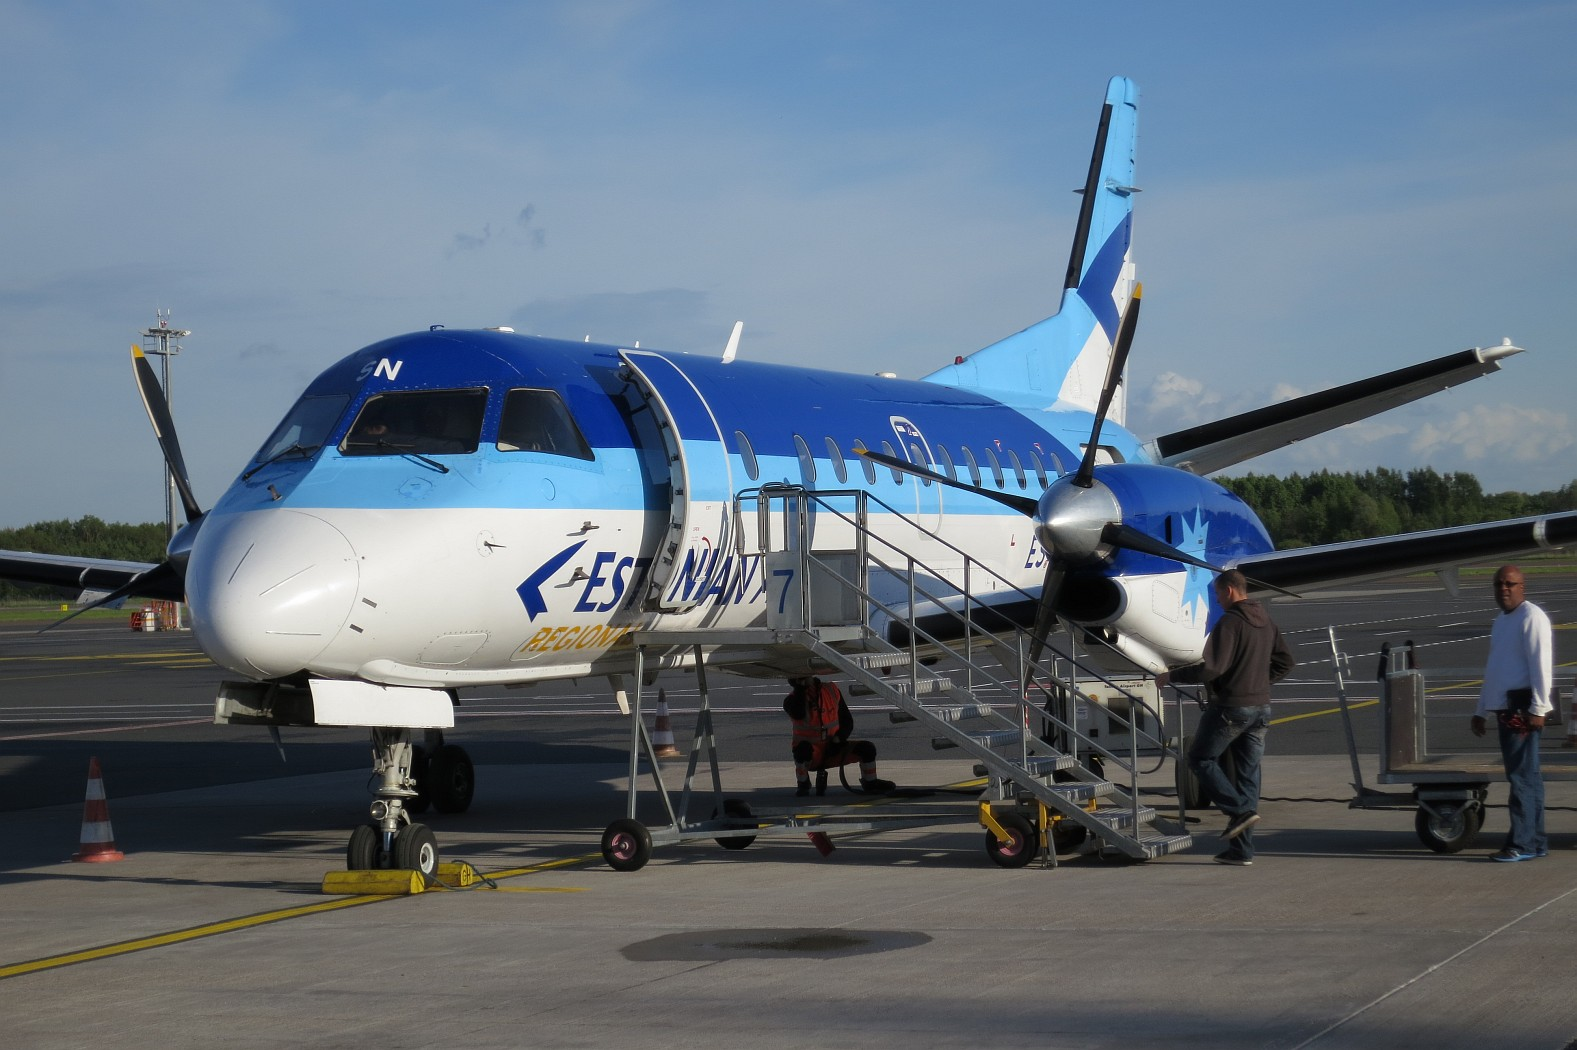 Saab 340 Estonian Air